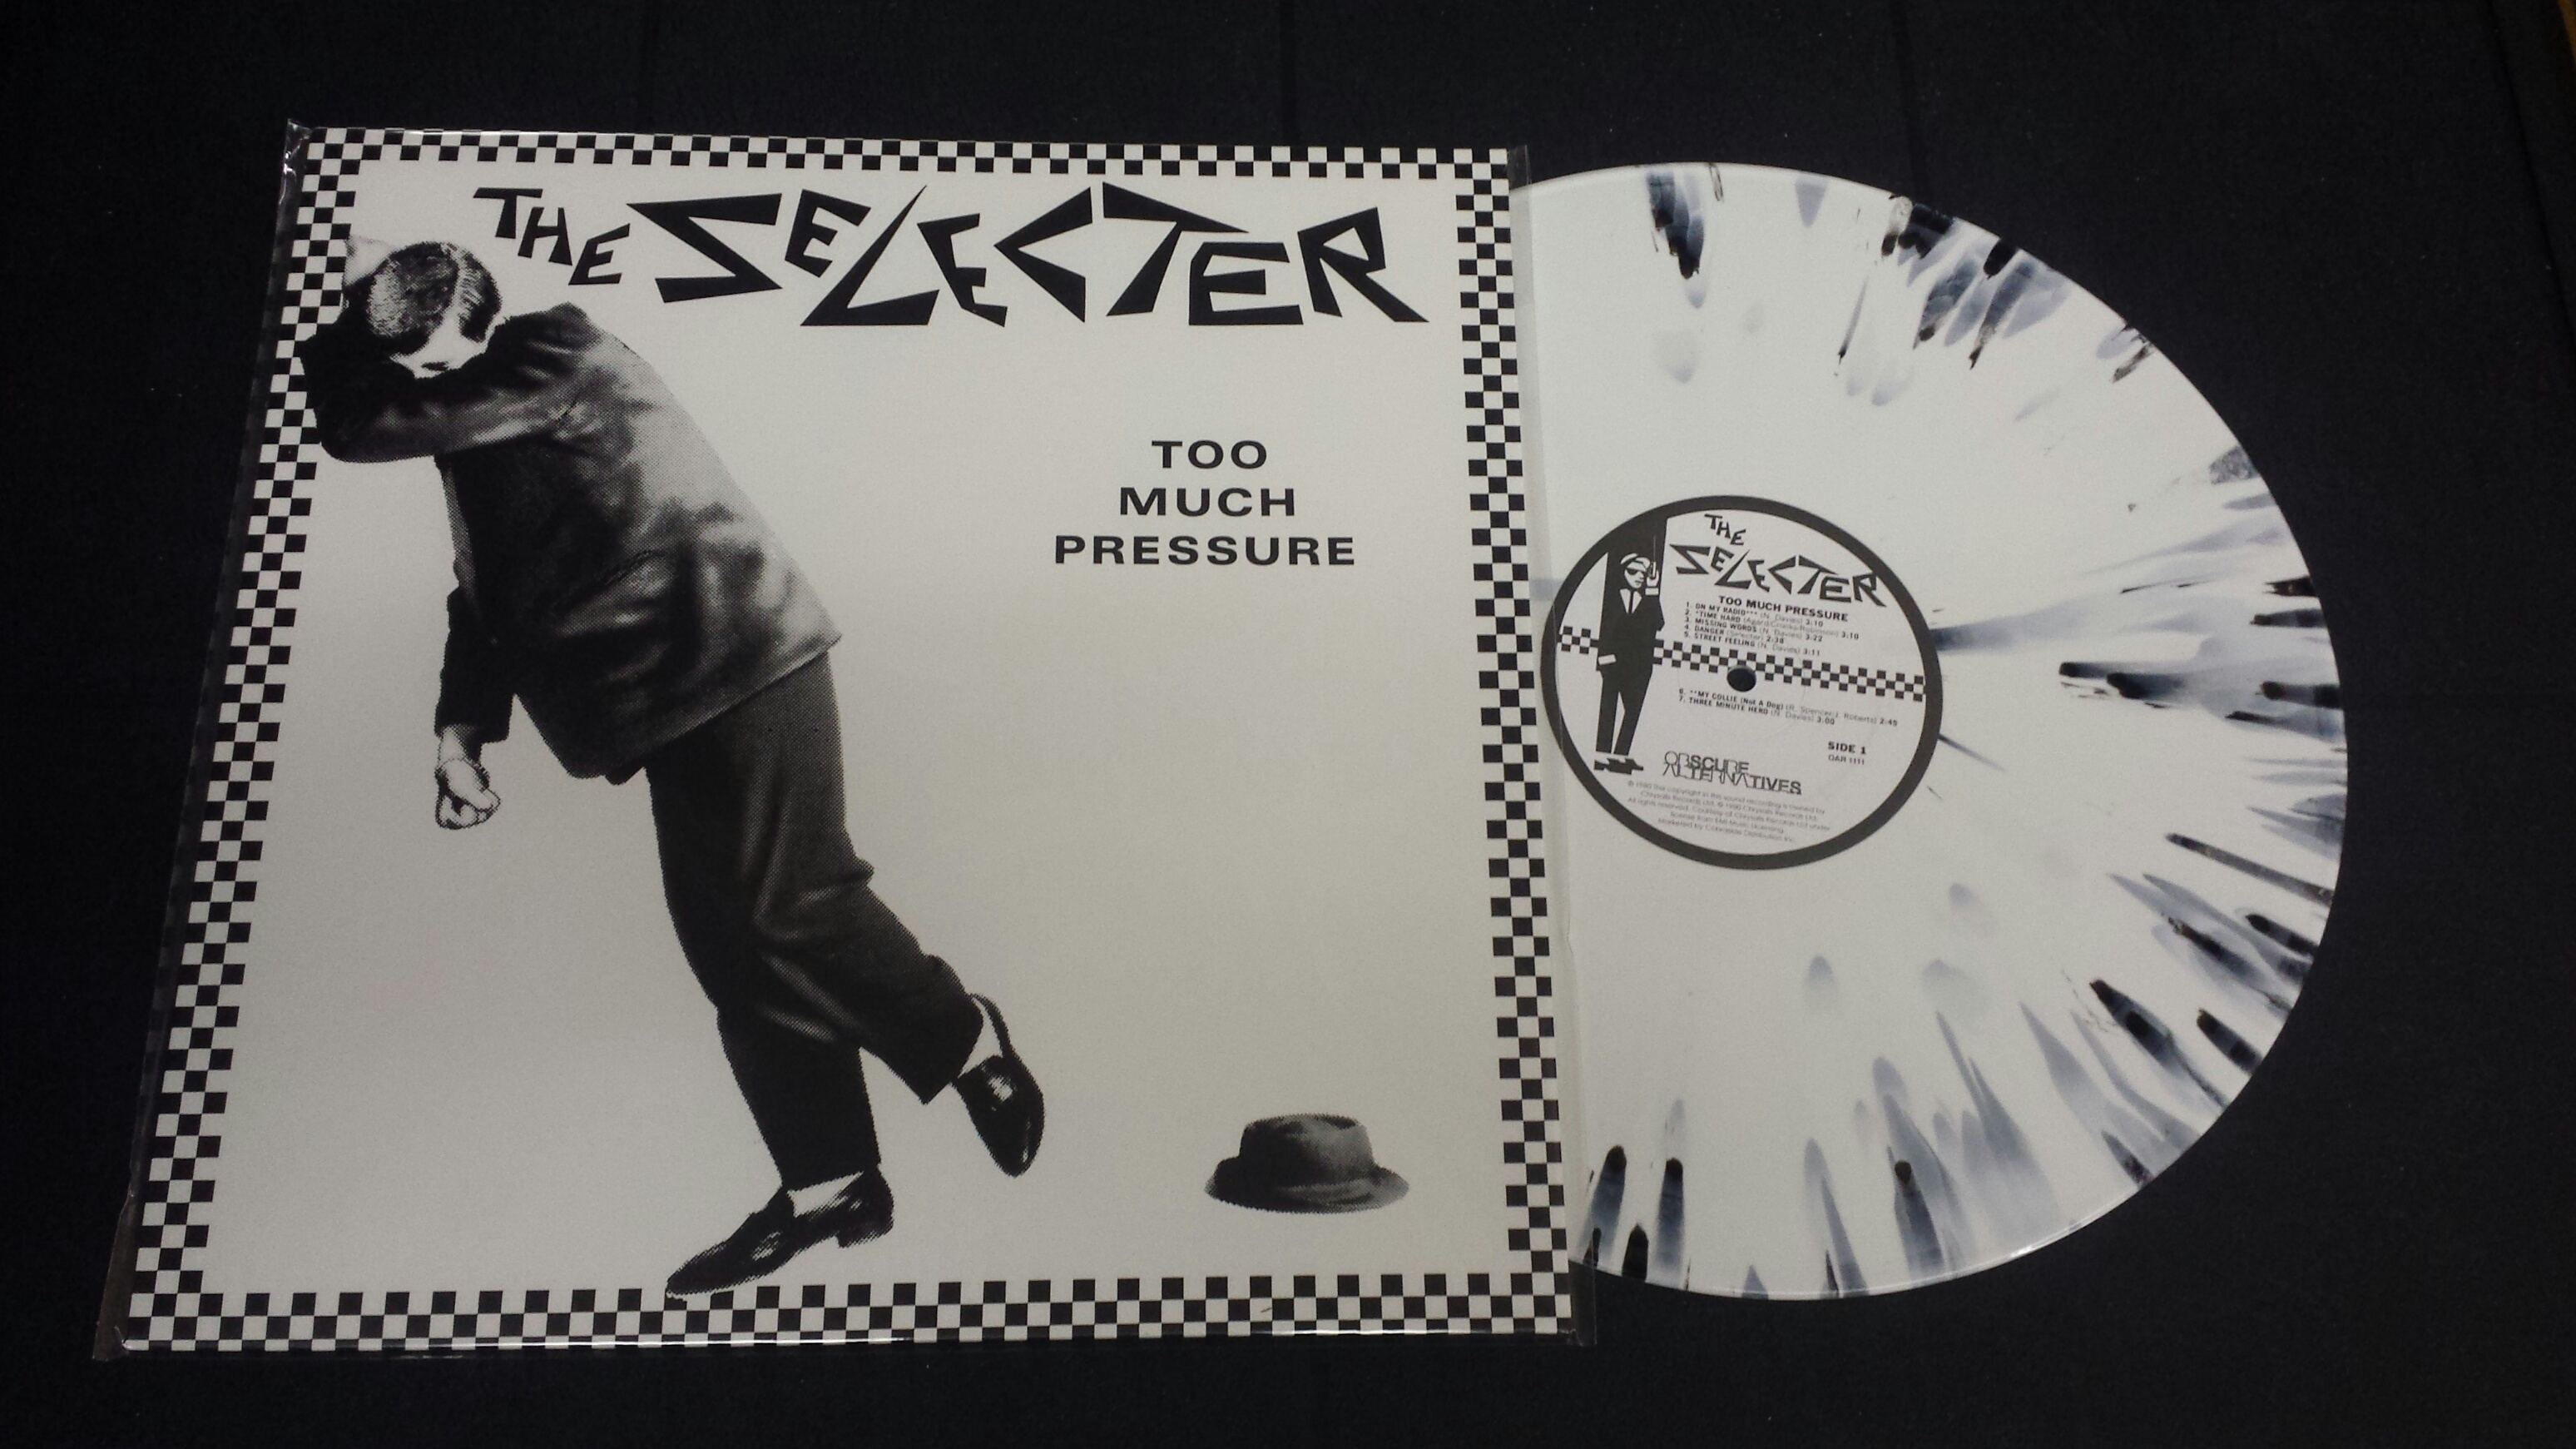 too much presure by colen wenke Too much pressure was the first album by british ska band the selecter it was released in 1980 on 2 tone records the album charted at # 5 in the united kingdom.